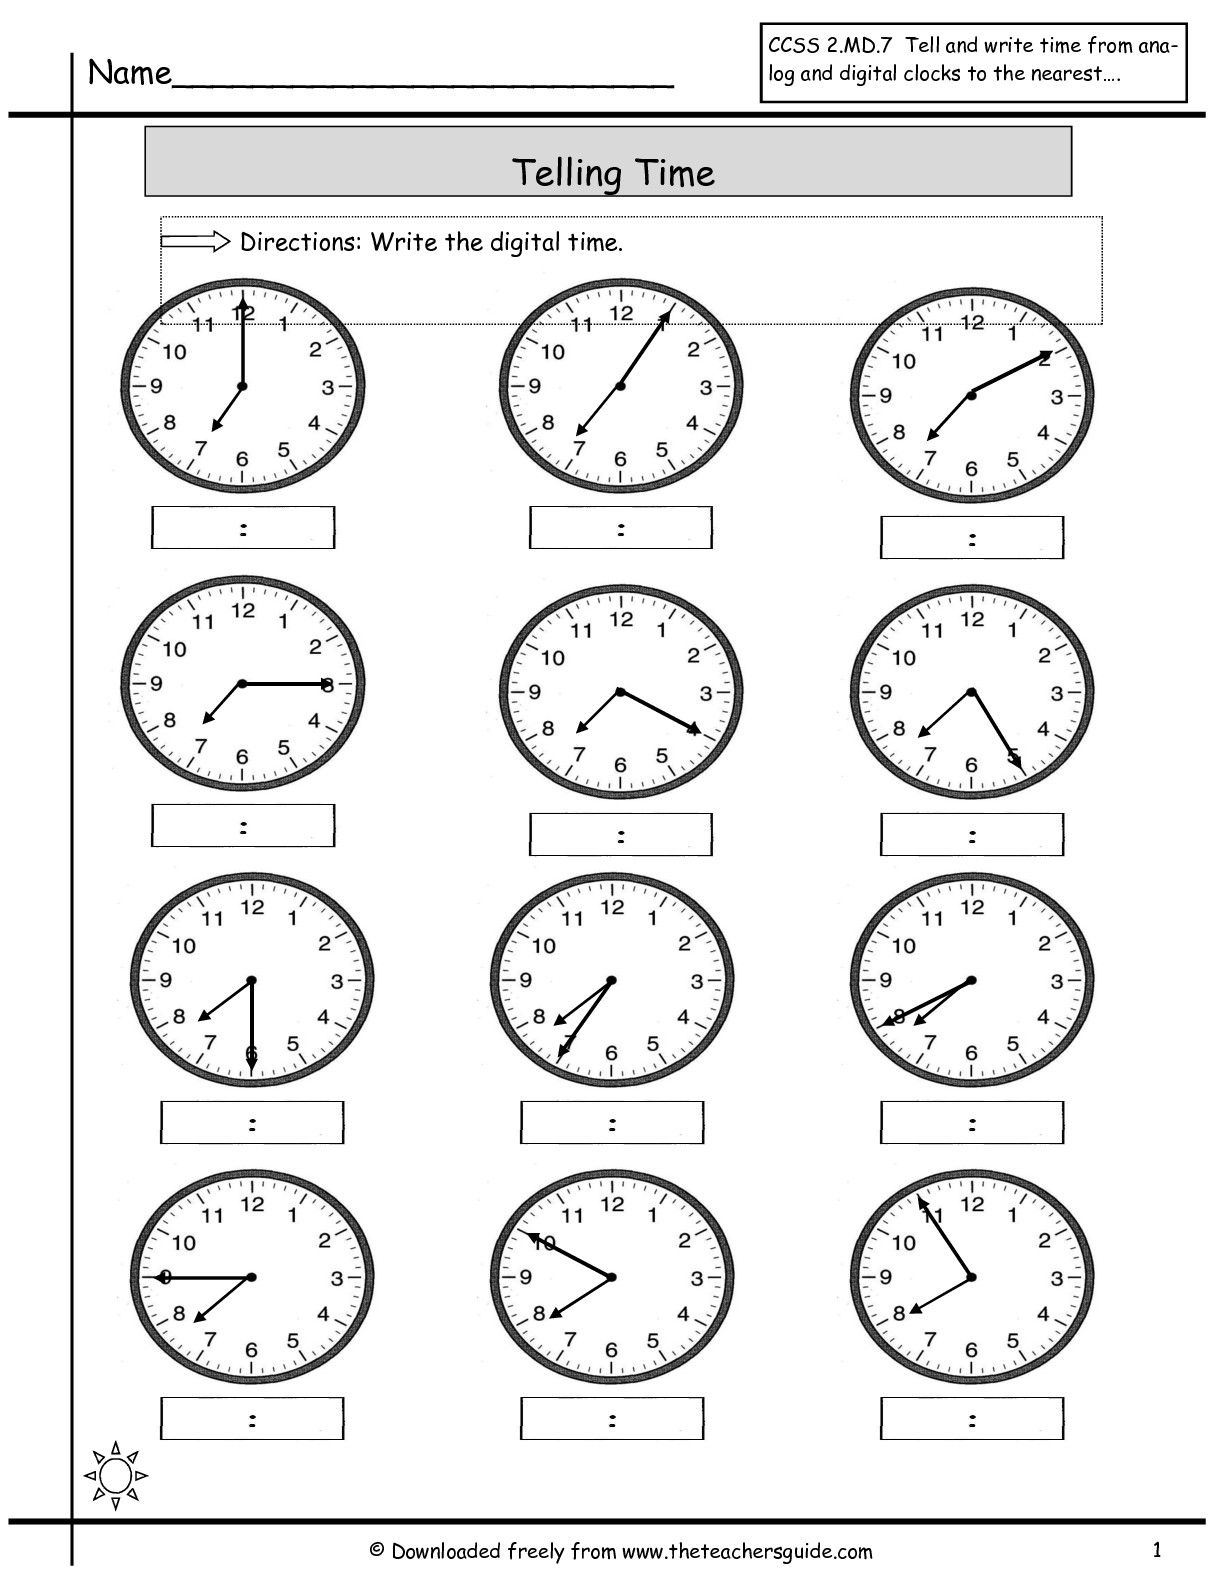 medium resolution of Telling Time Worksheets from The Teacher's Guide   Time worksheets